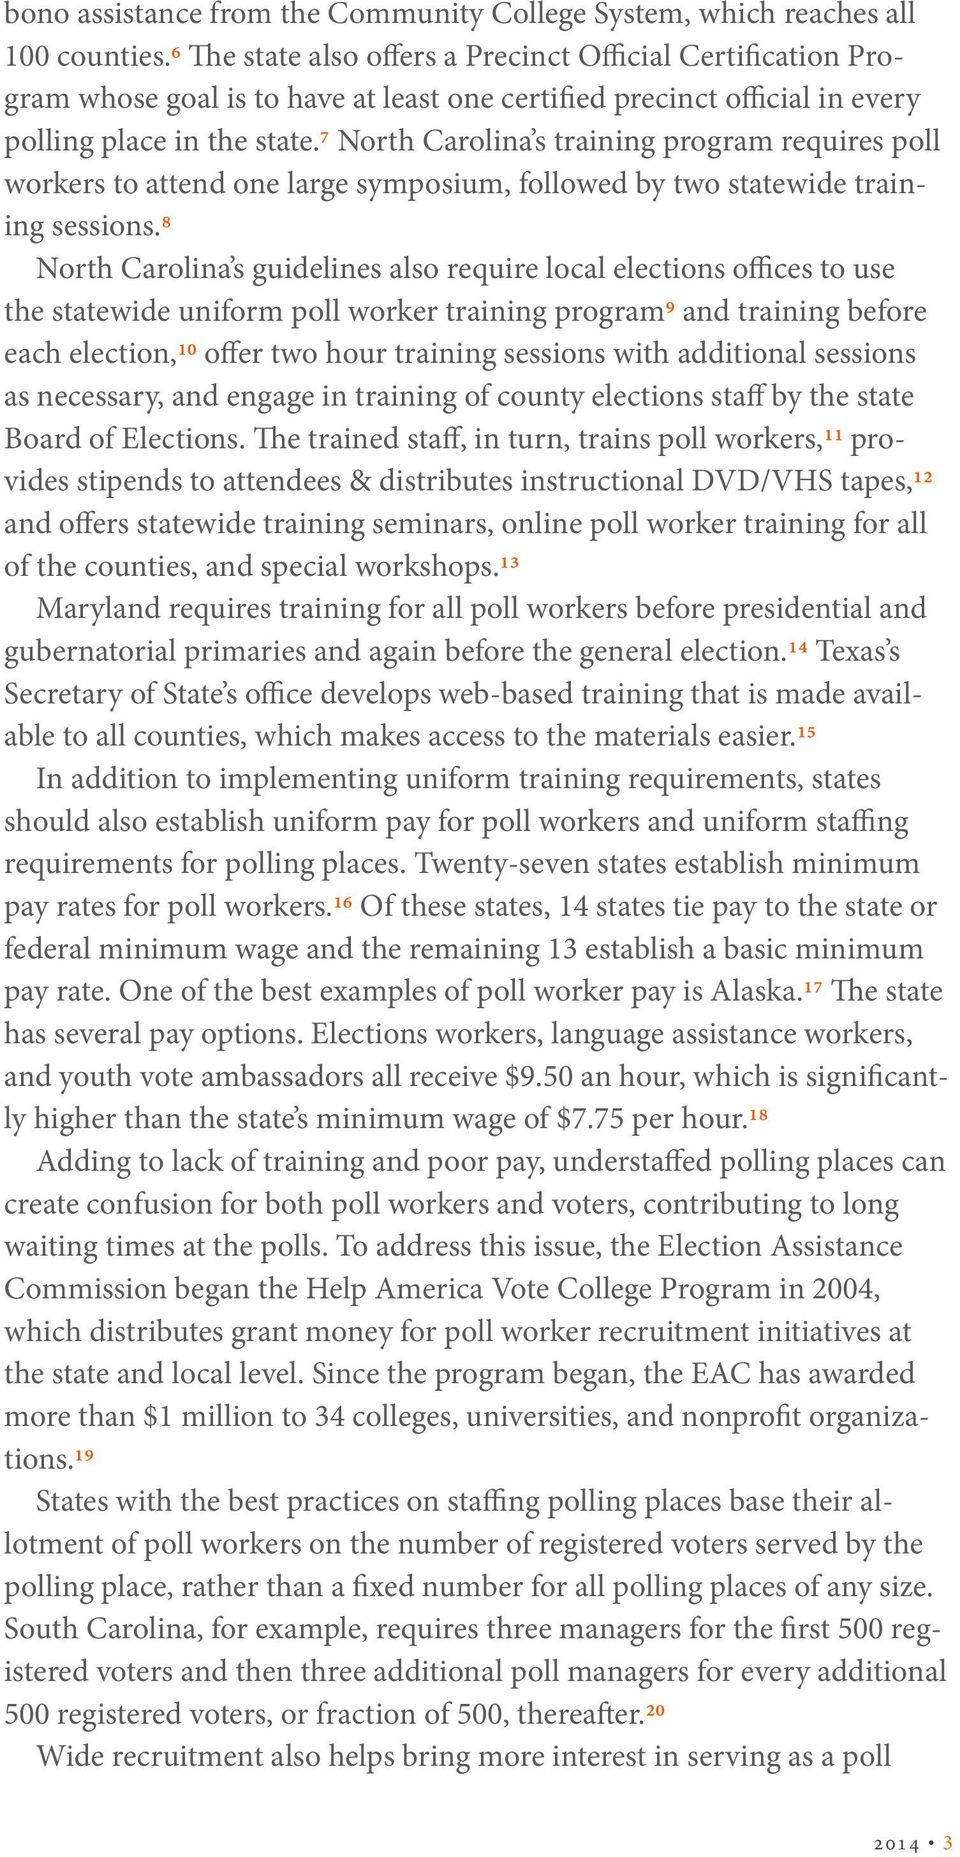 7 North Carolina s training program requires poll workers to attend one large symposium, followed by two statewide training sessions.